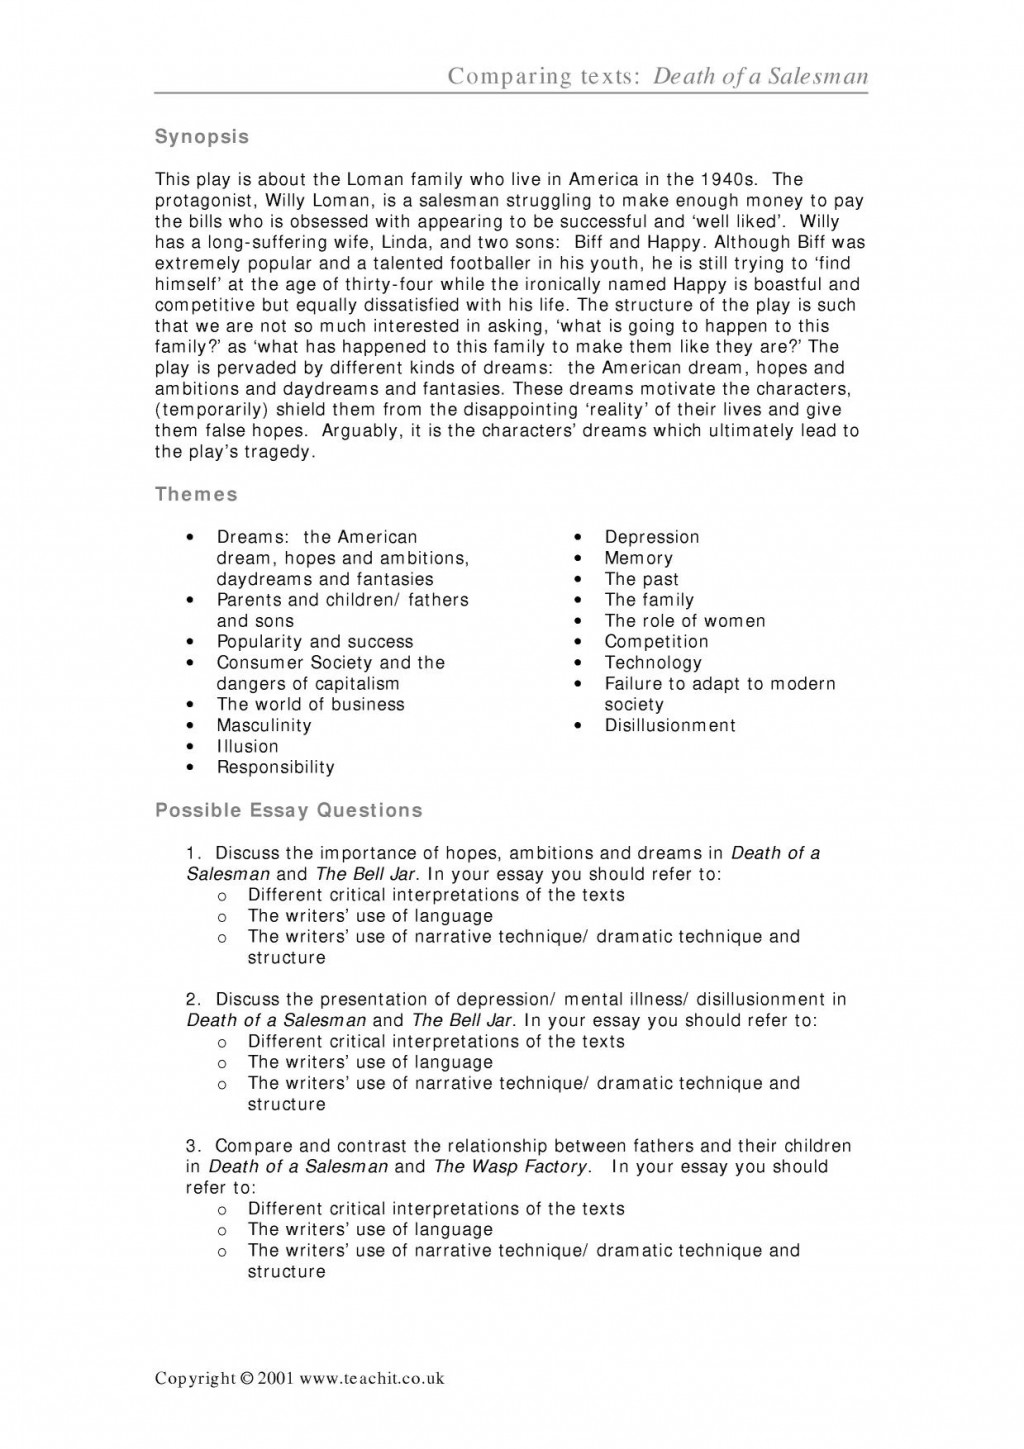 004 Essay Example Death Of Salesman X1981 Php Pagespeed Ic Phenomenal A Topics Argumentative Large